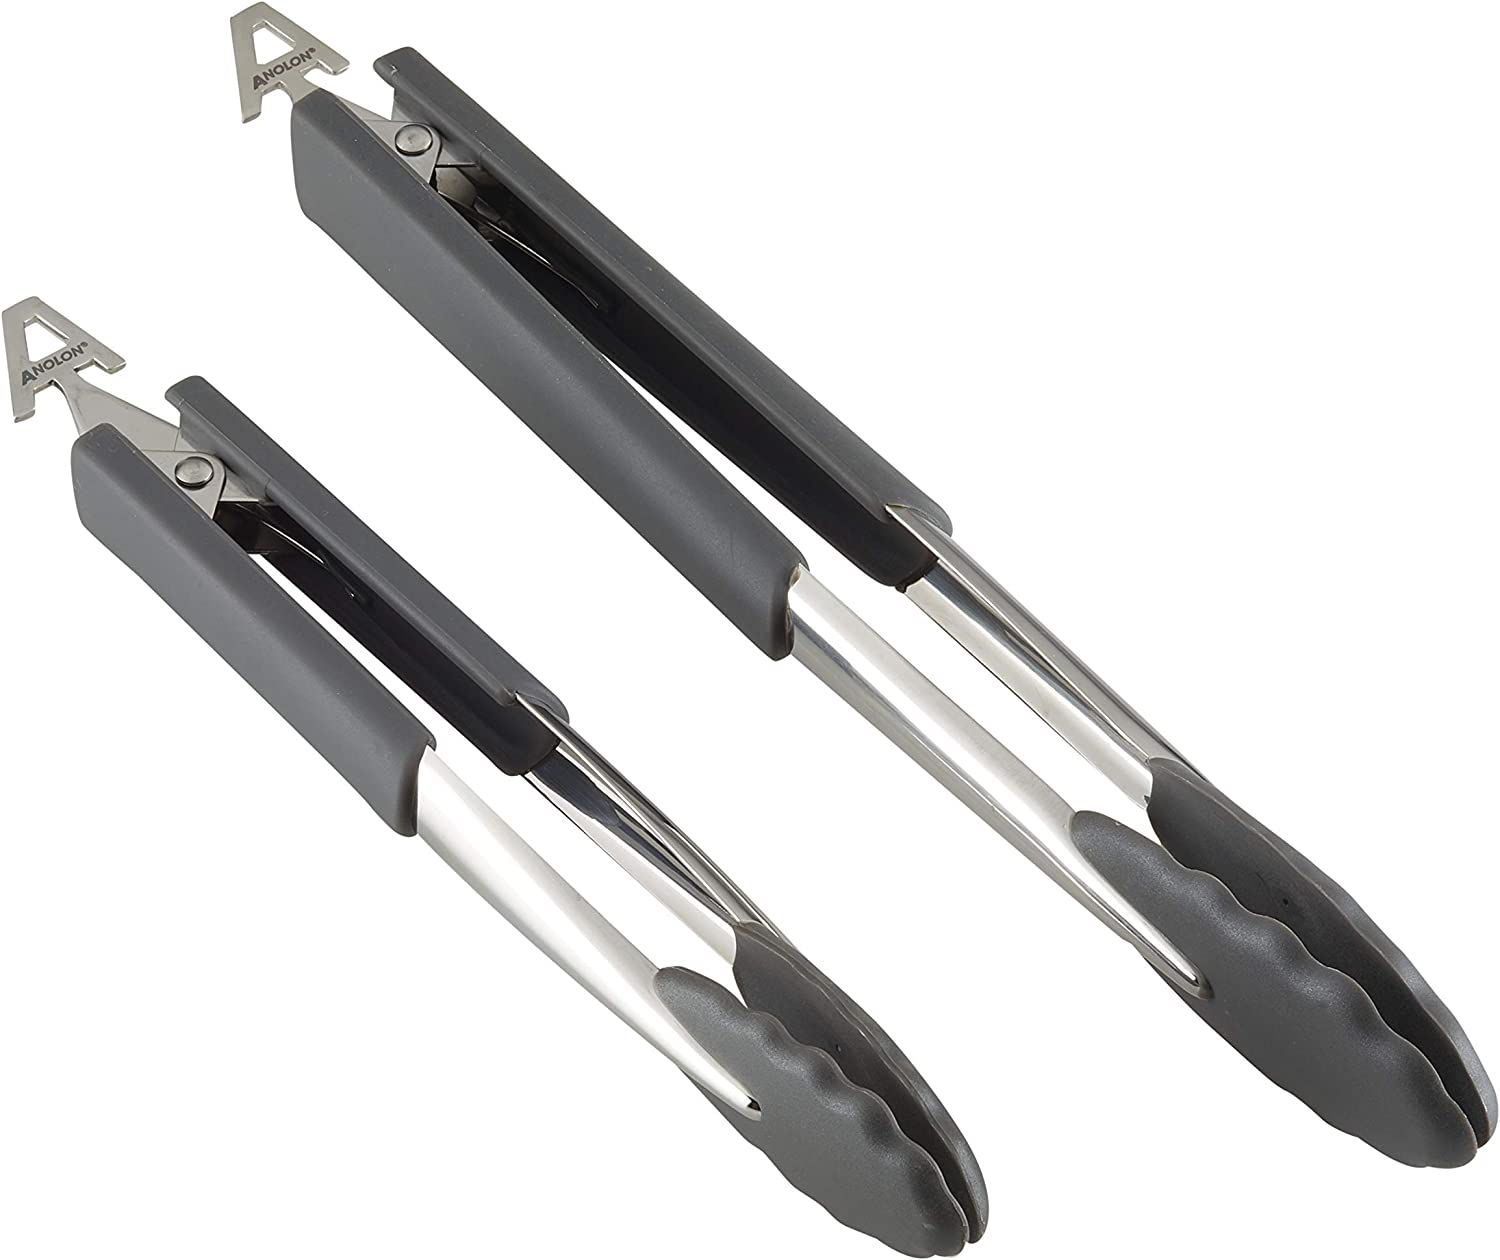 Anolon SureGrip Dishwasher Safe Nonstick Locking Cooking Tongs Set/Salad Serving Tools, 9 Inch and 12 Inch, Graphite Gray